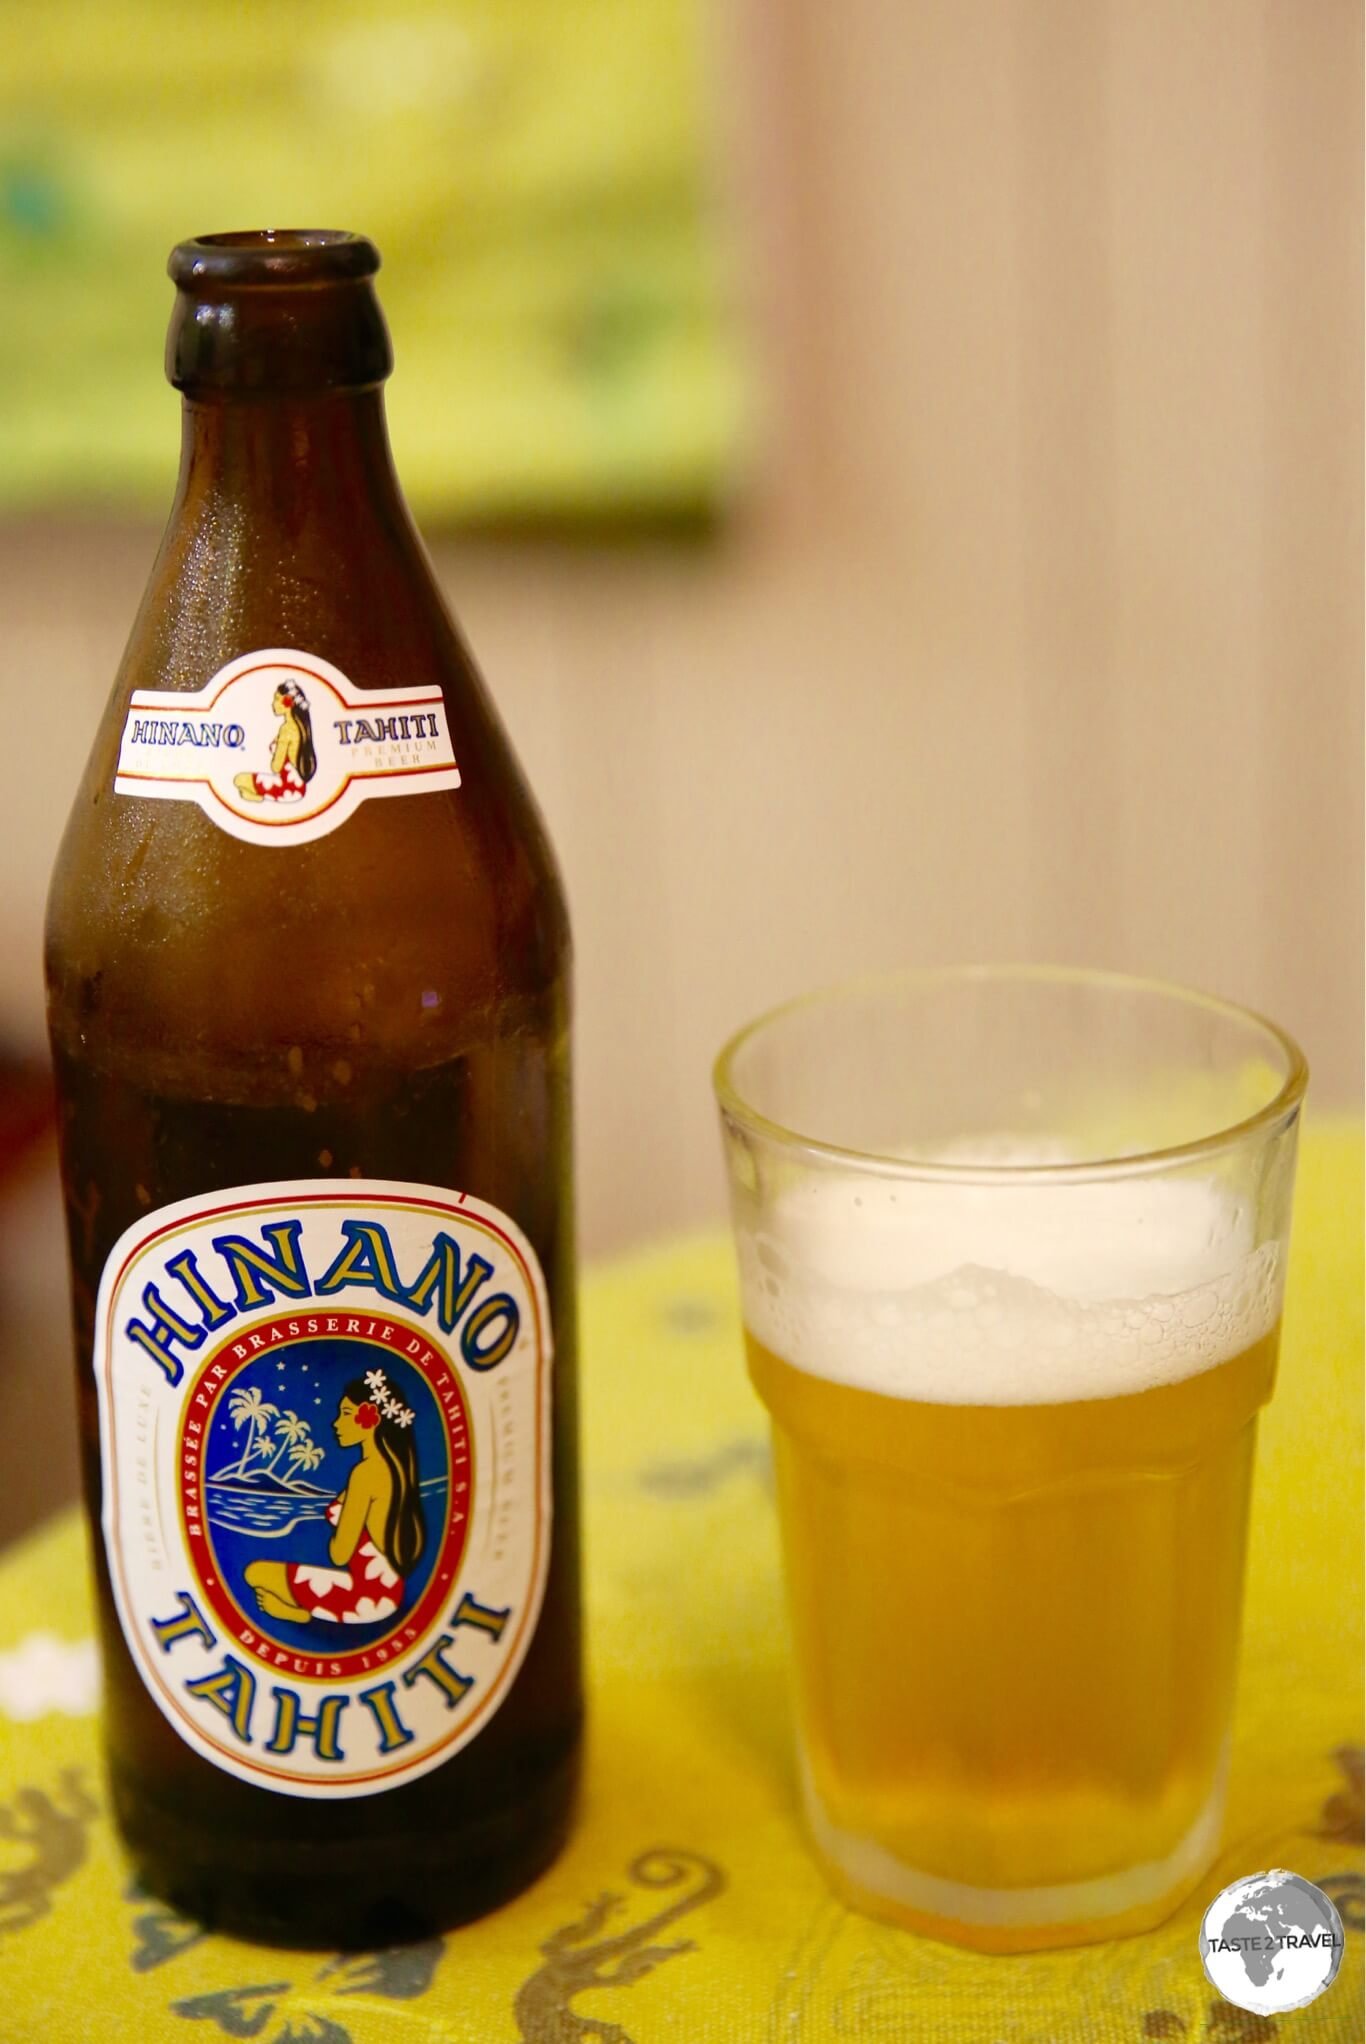 The local brew, Hinano Beer has a wonderfully, light, delicate favour.